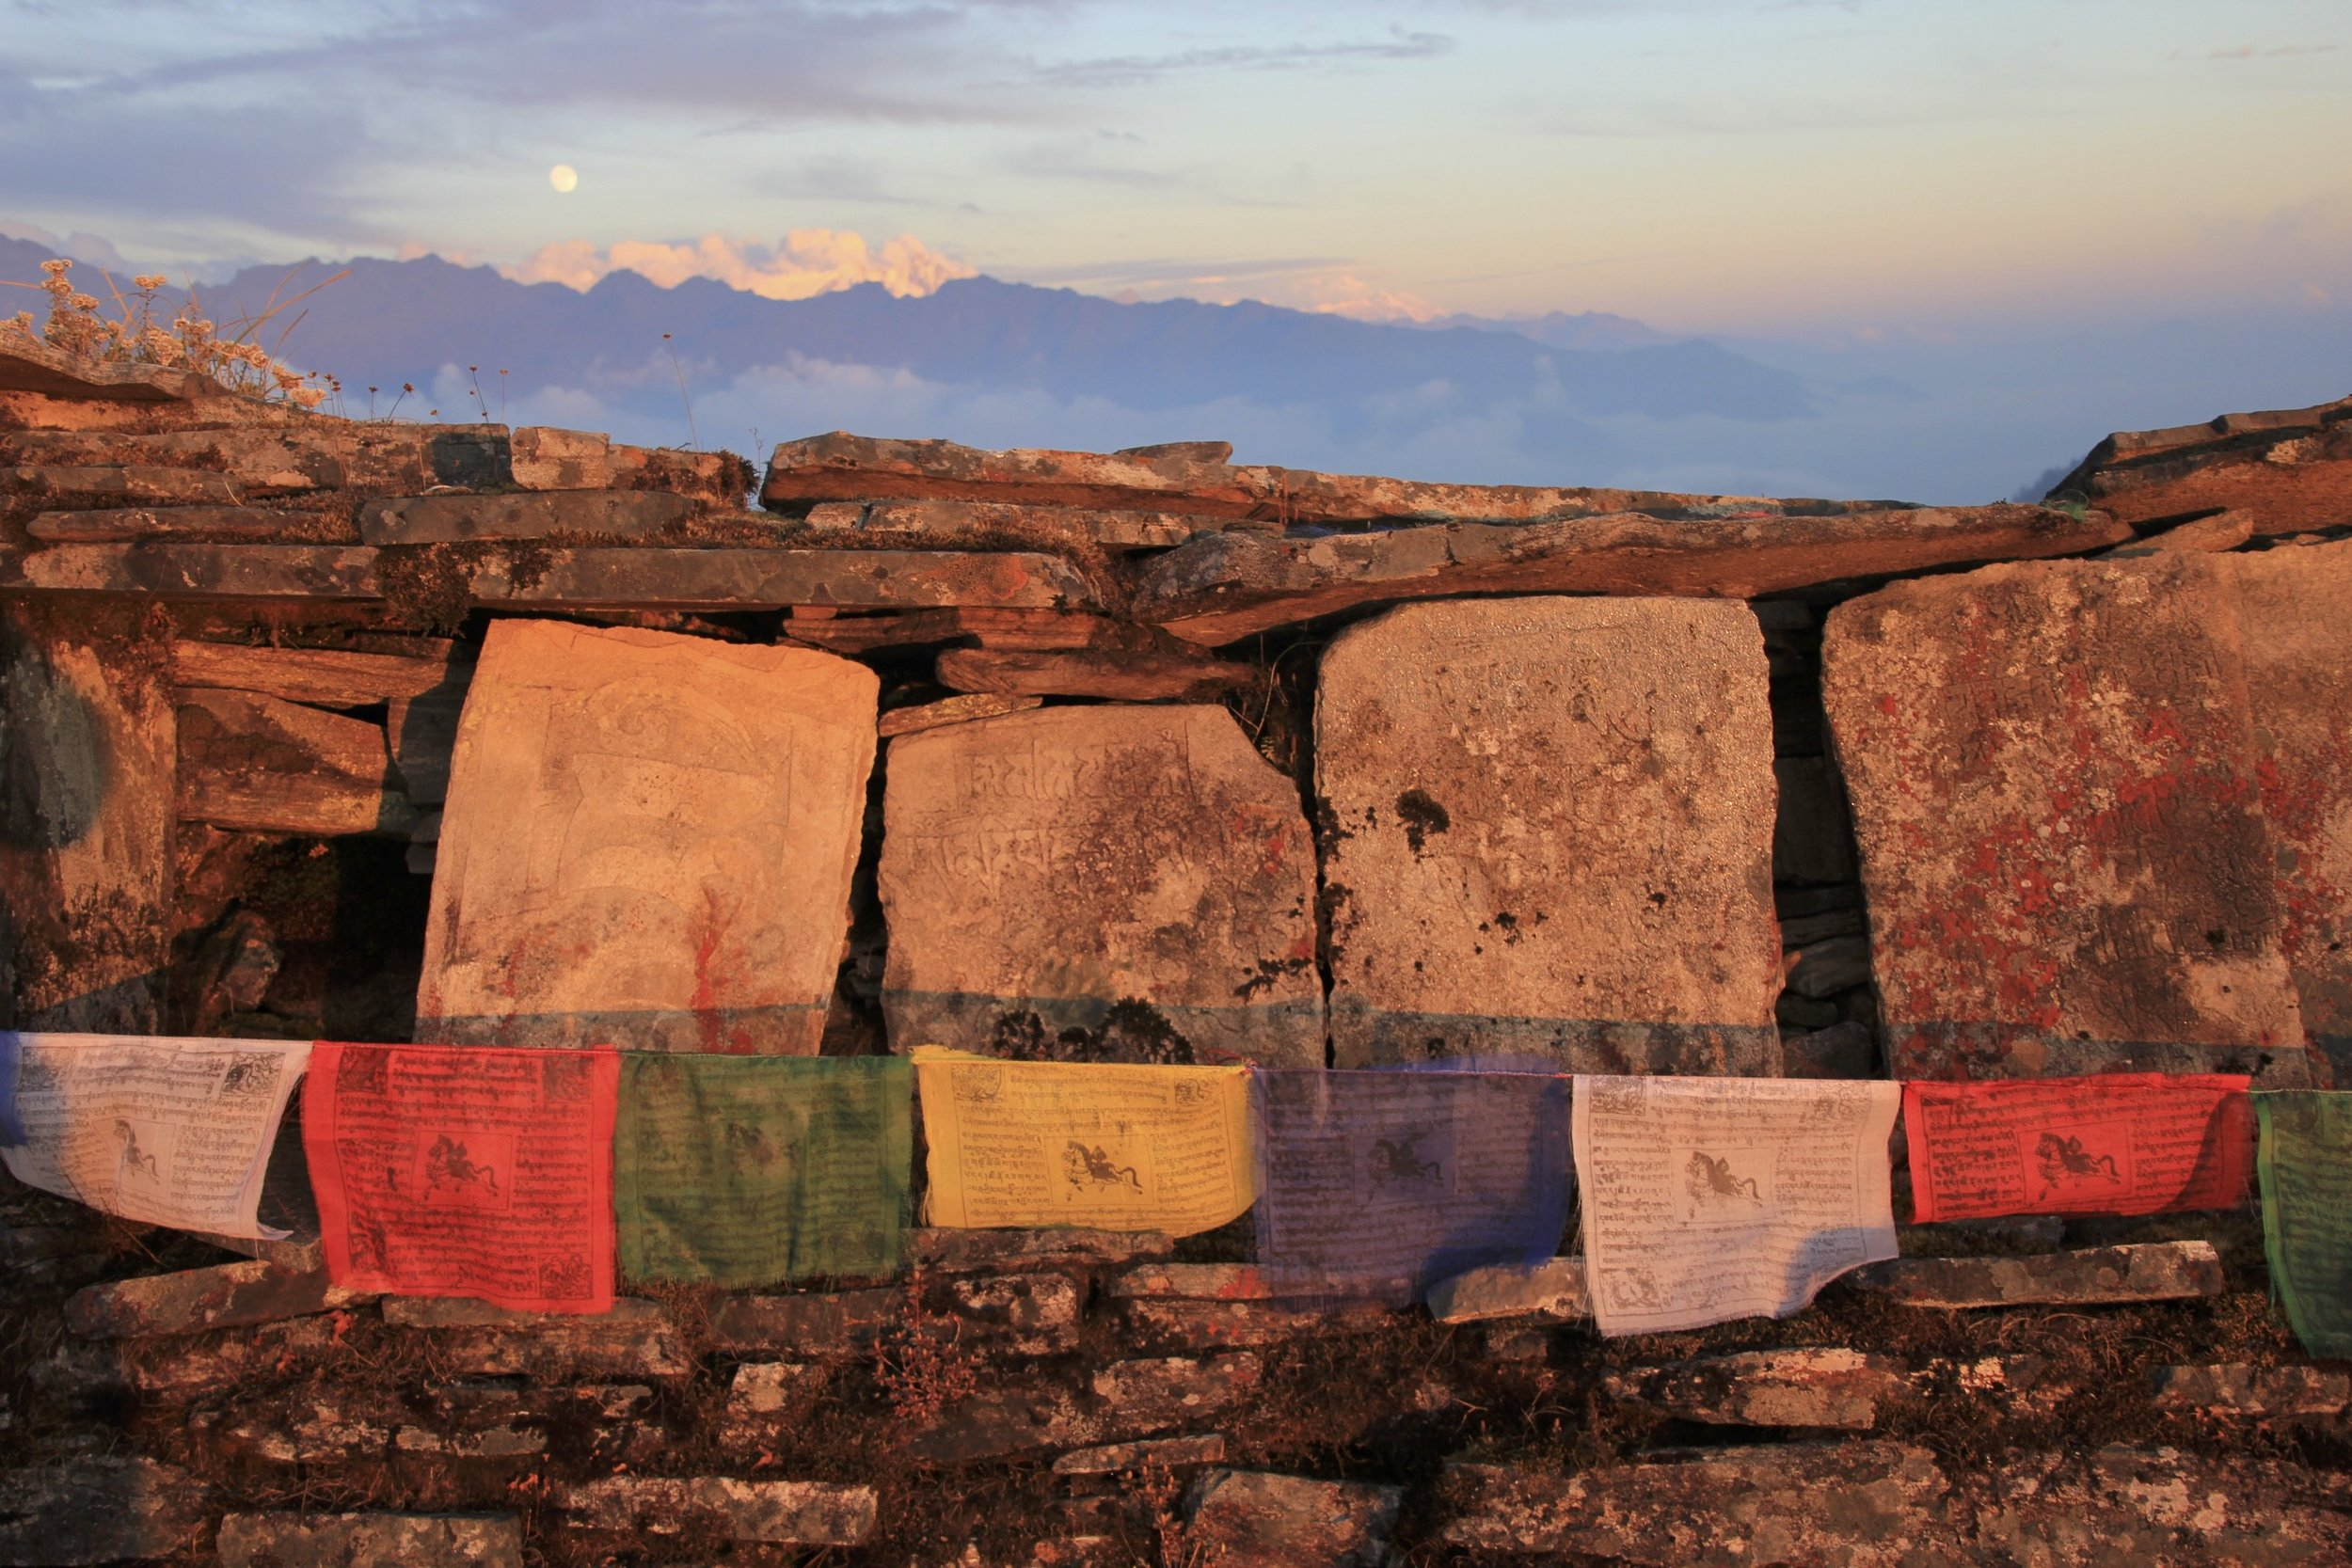 A mani wall and Buddhist prayer flags. Mani walls are walls built by followers of Buddhism. The walls consist of hand-crafted tablets inscribed with Buddhist prayers and images of the Lord Buddha.